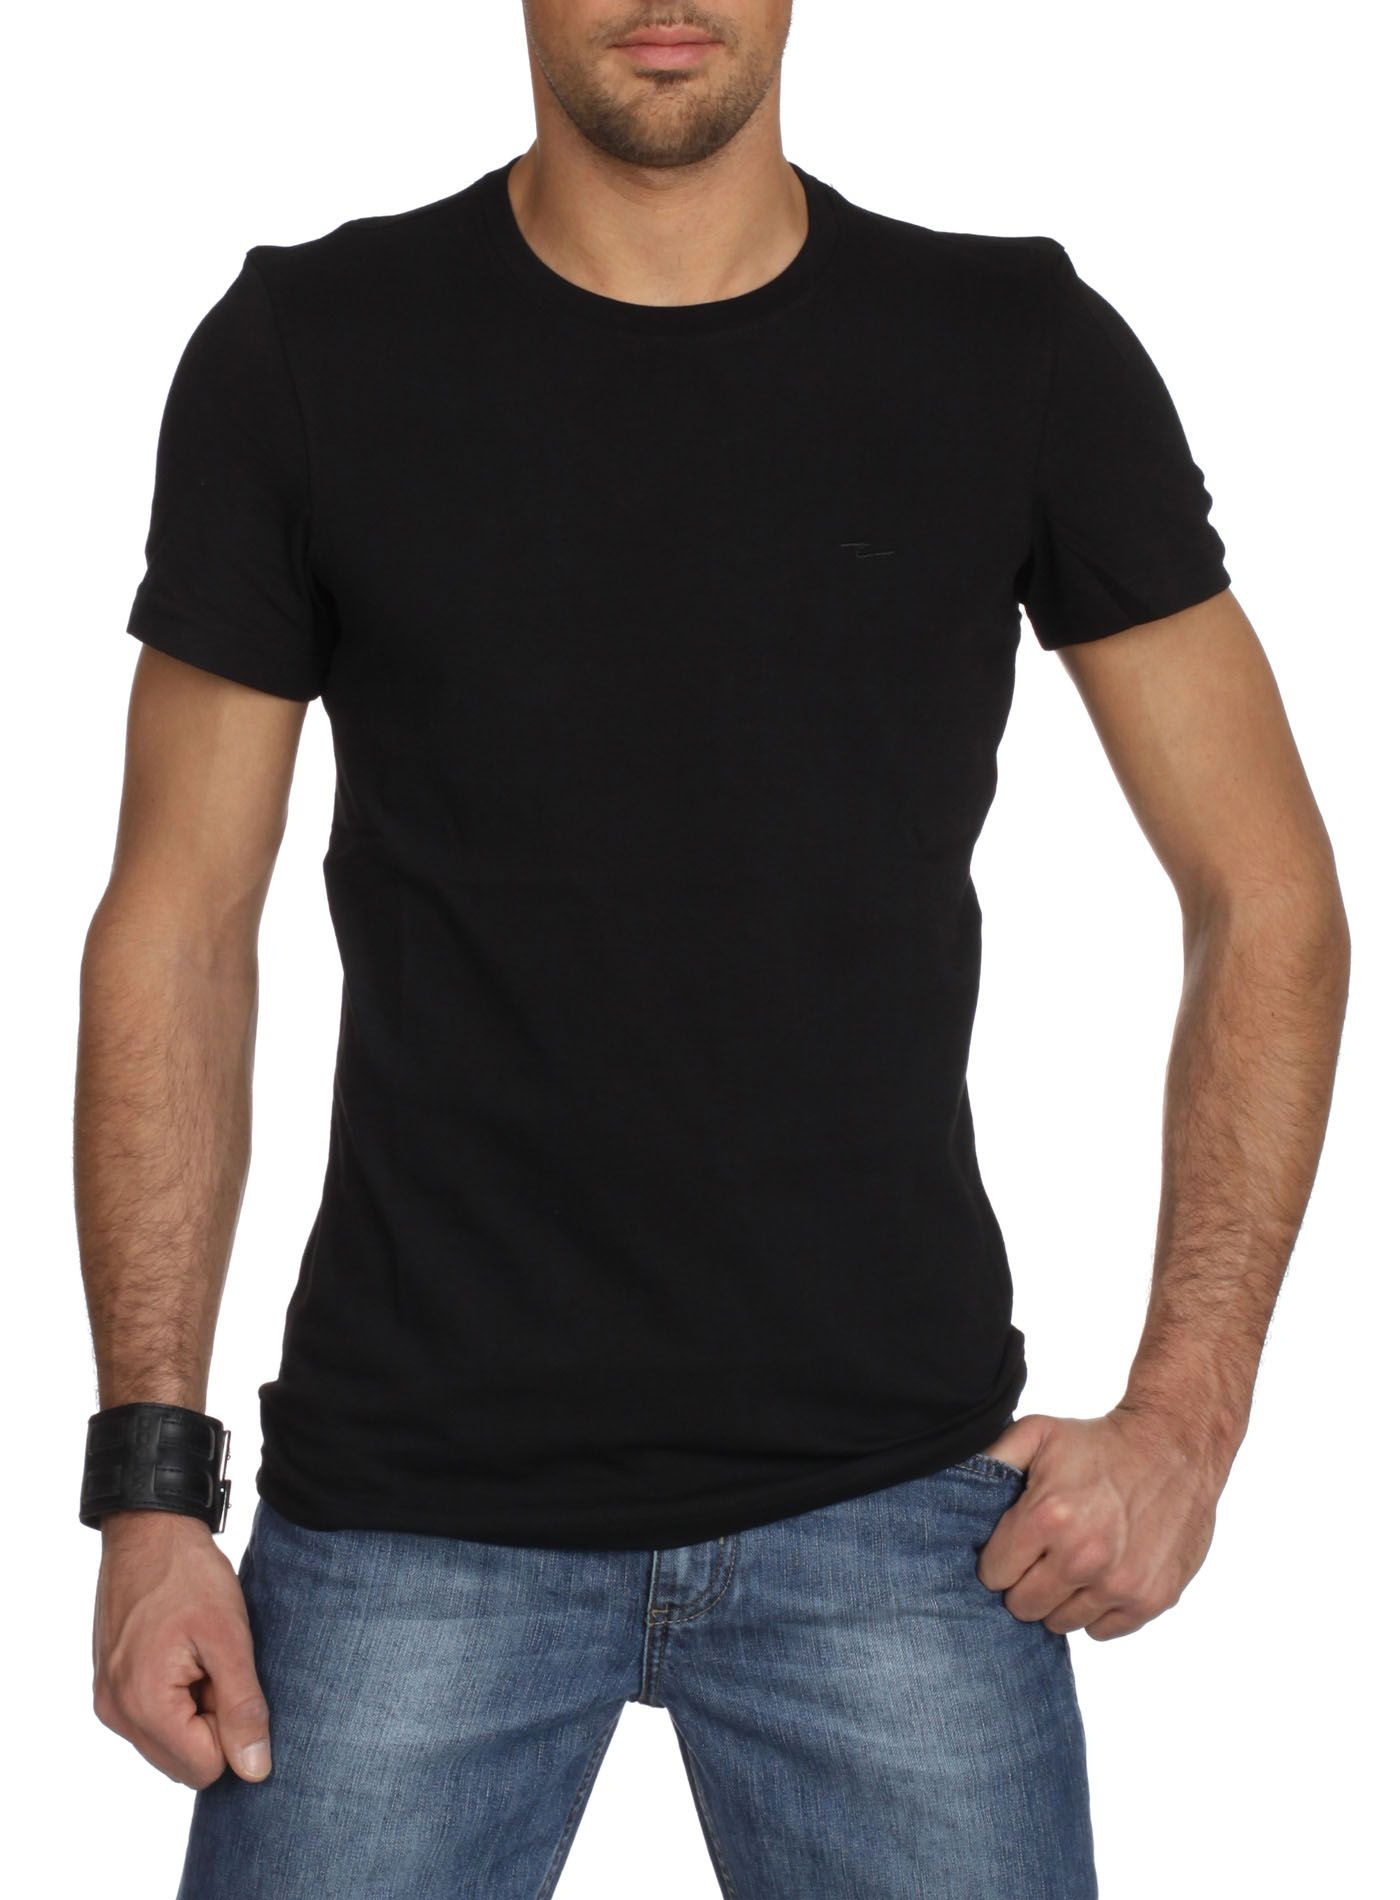 Wholesale blank t shirts for men men 39 s t shirt buy blank for Model black t shirt